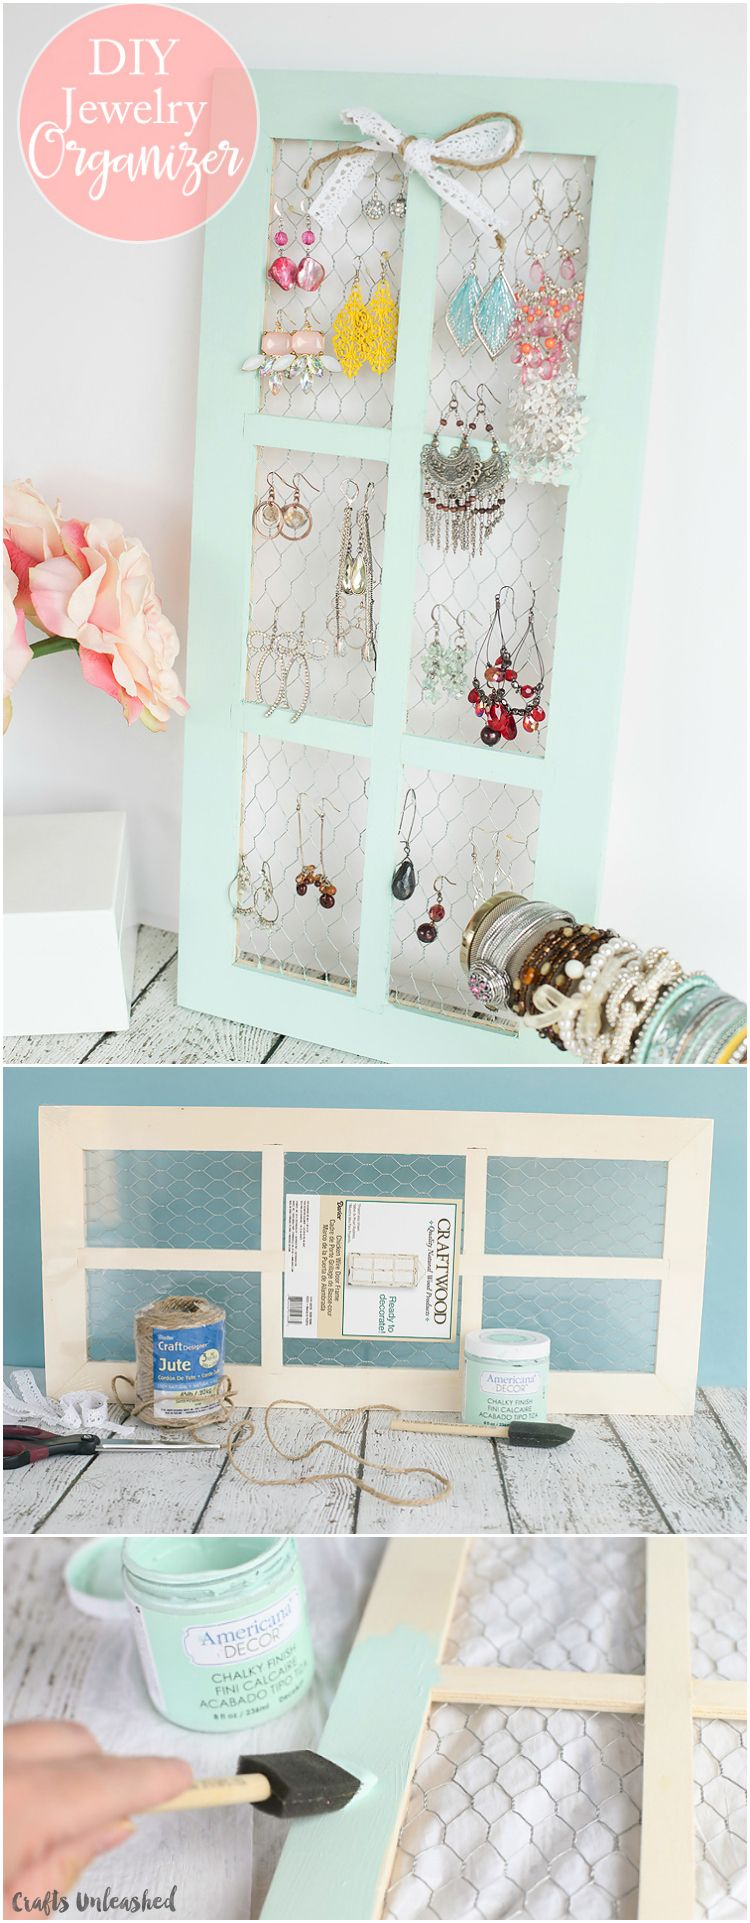 DIY Jewelry Holder with Chicken Wire Window Frame | Chicken wire ...